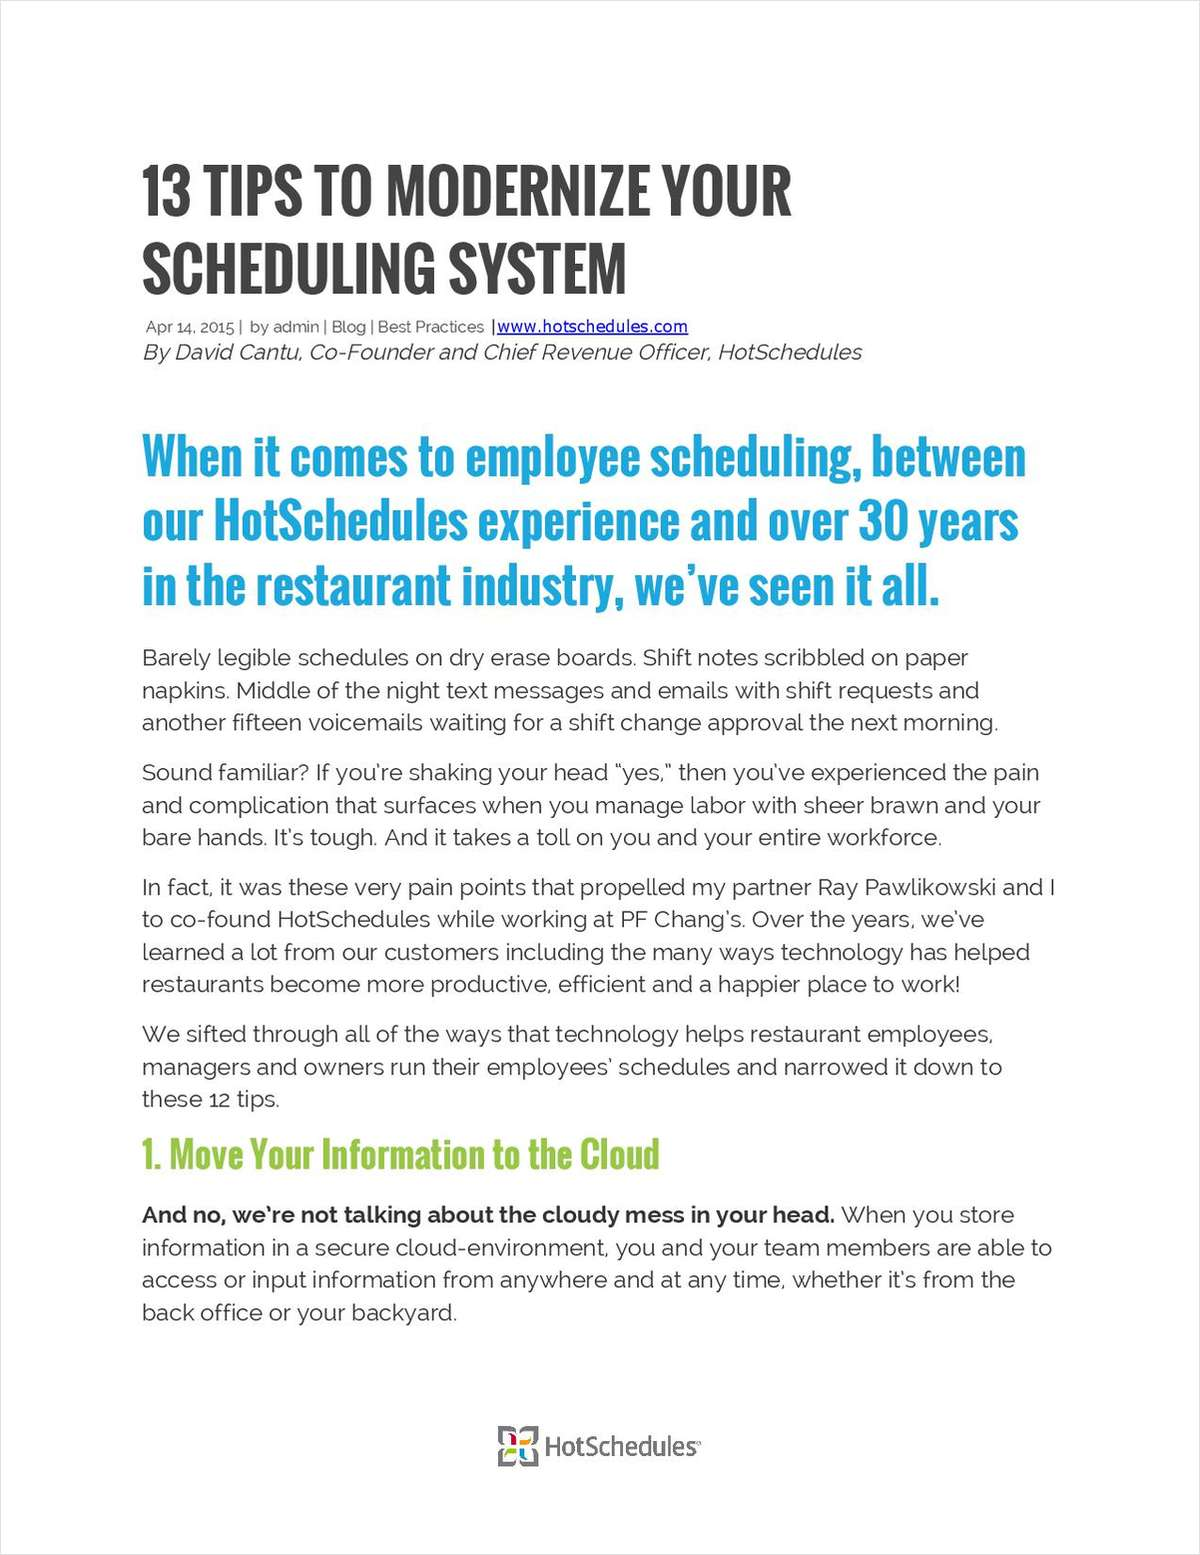 13 Tips to Modernize Your Scheduling System